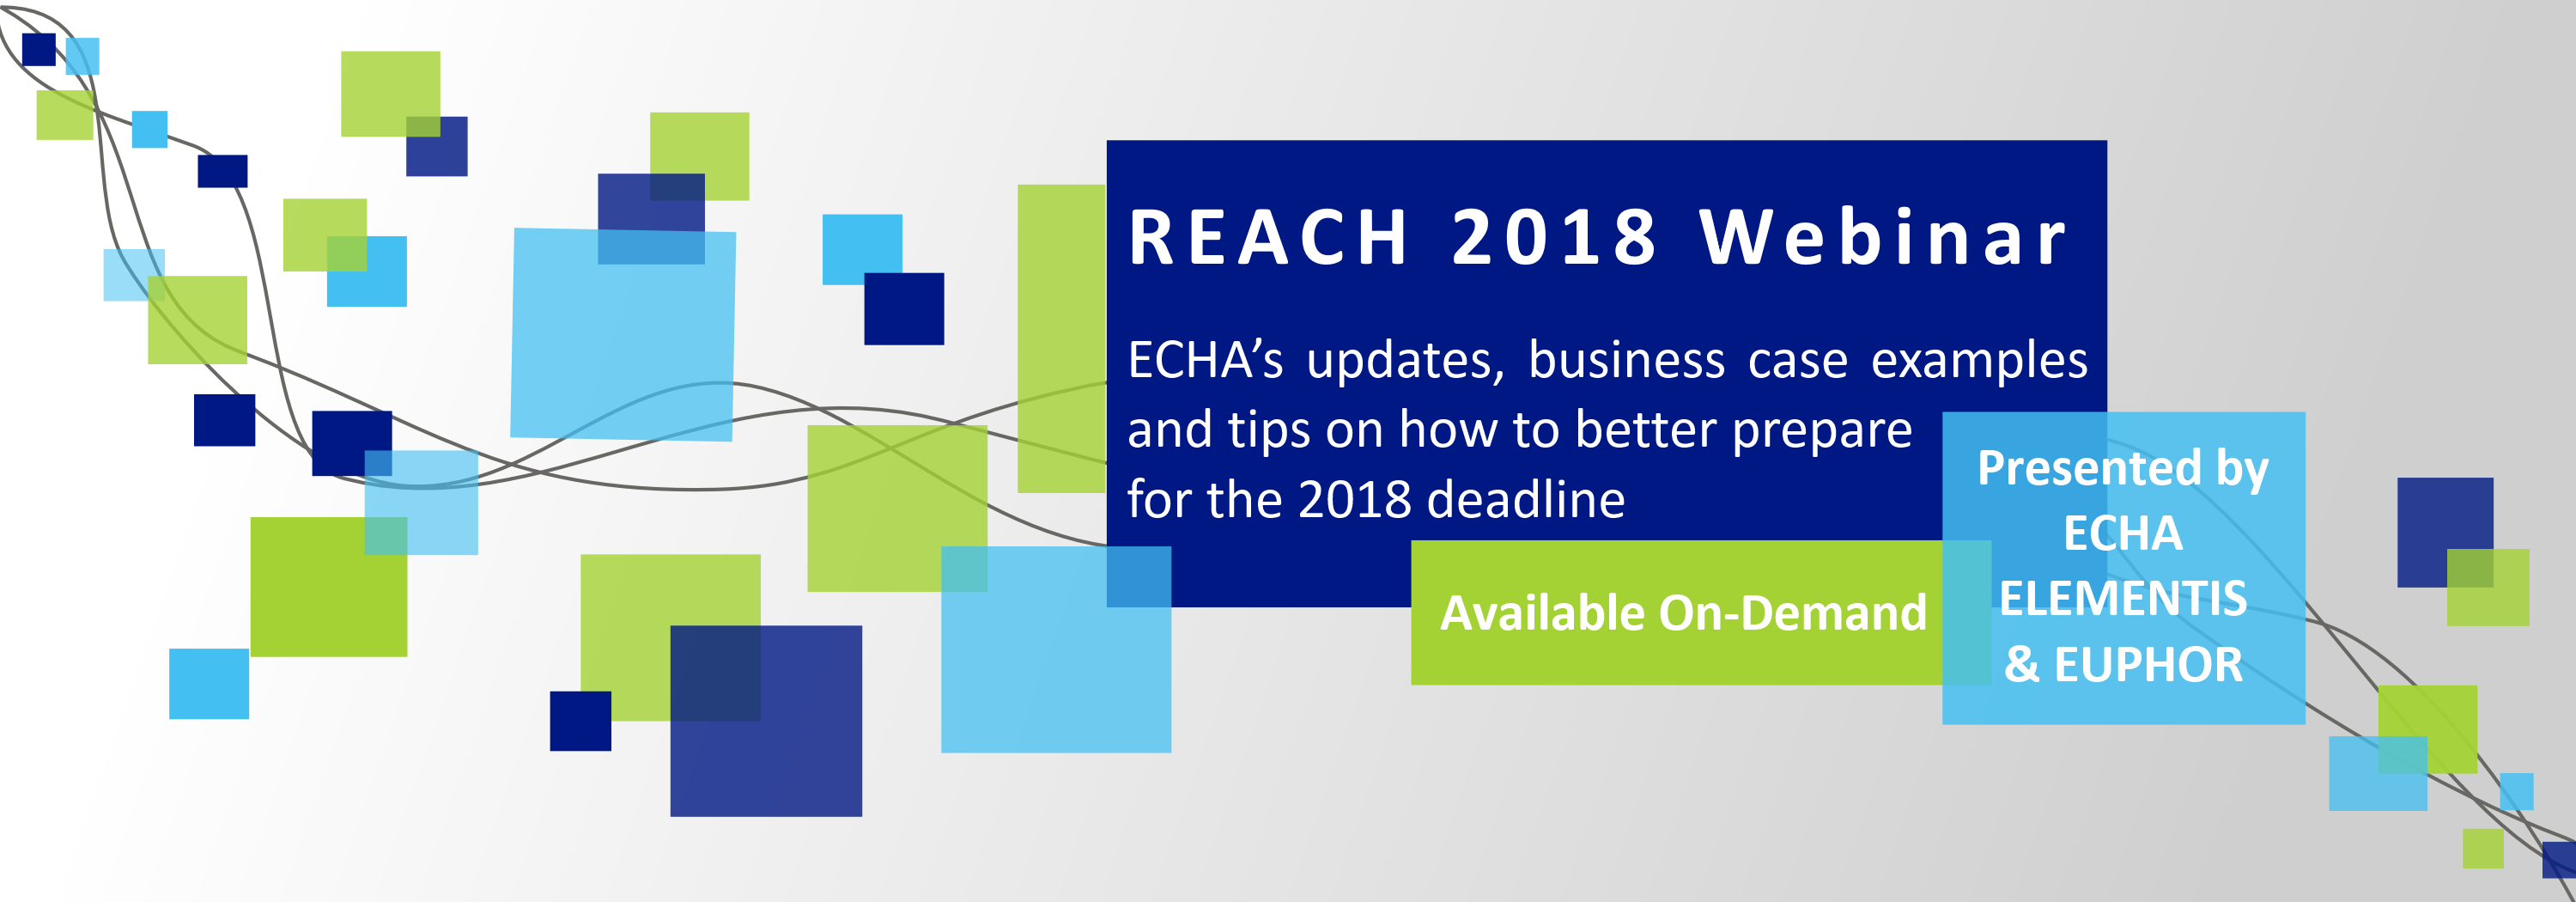 reach 2018 webinar on demand banner echa chemicals